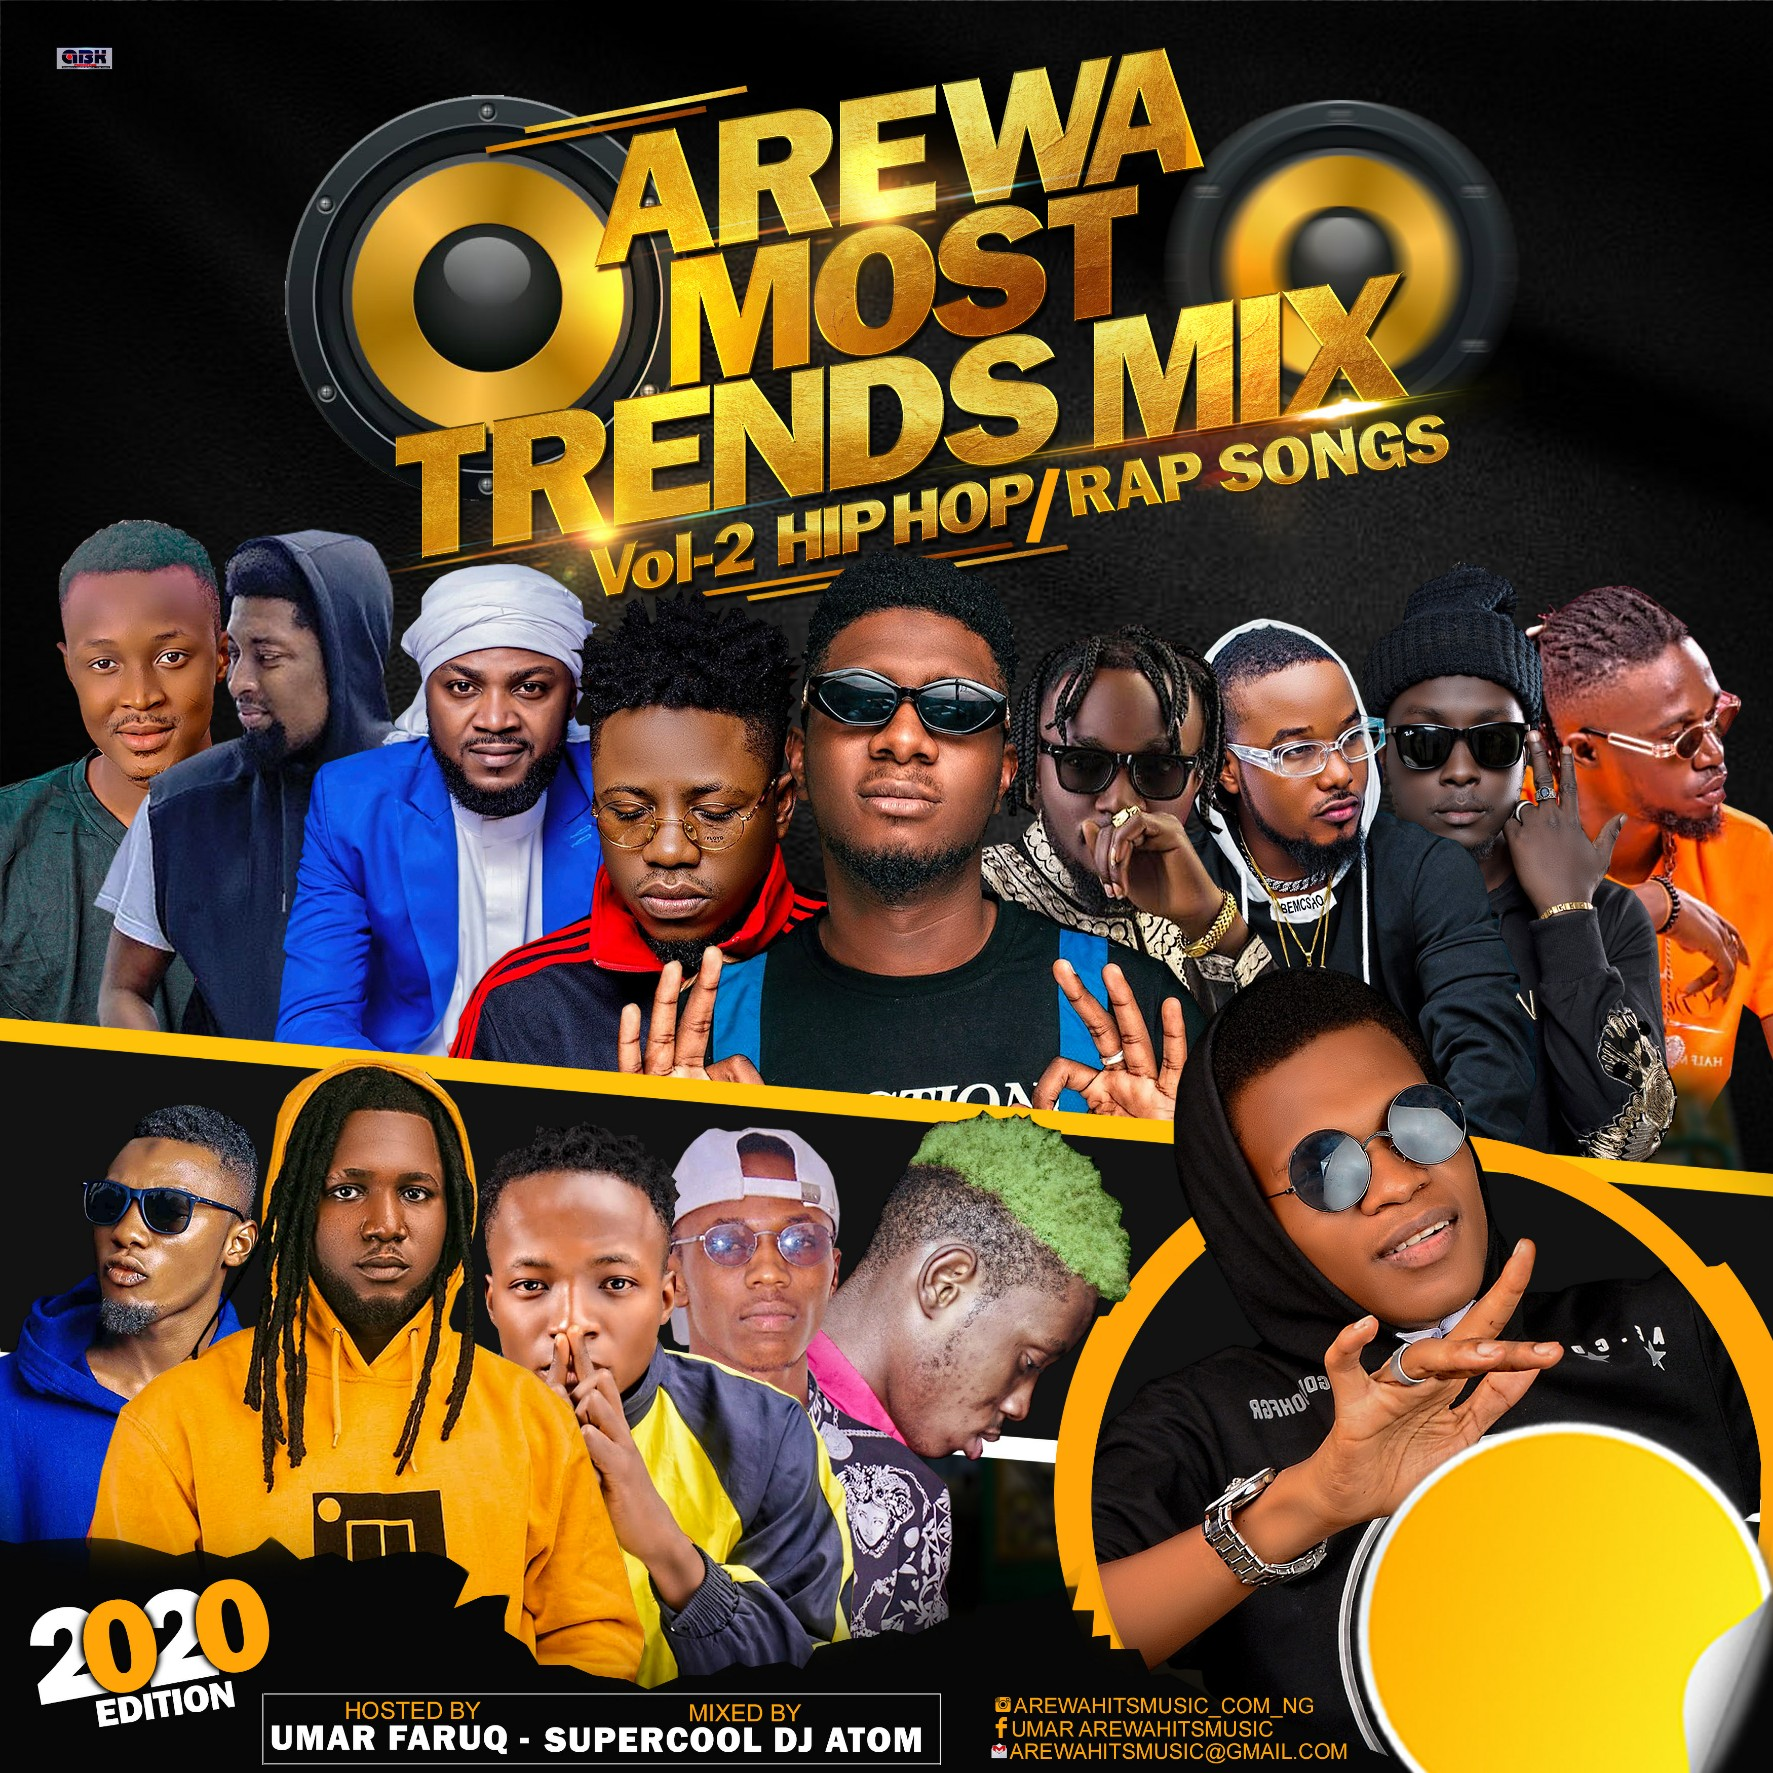 DJ MIXTAPE: Arewa Most Trends vol. 2 - Hip Hop Rap songs (2020 Edition)